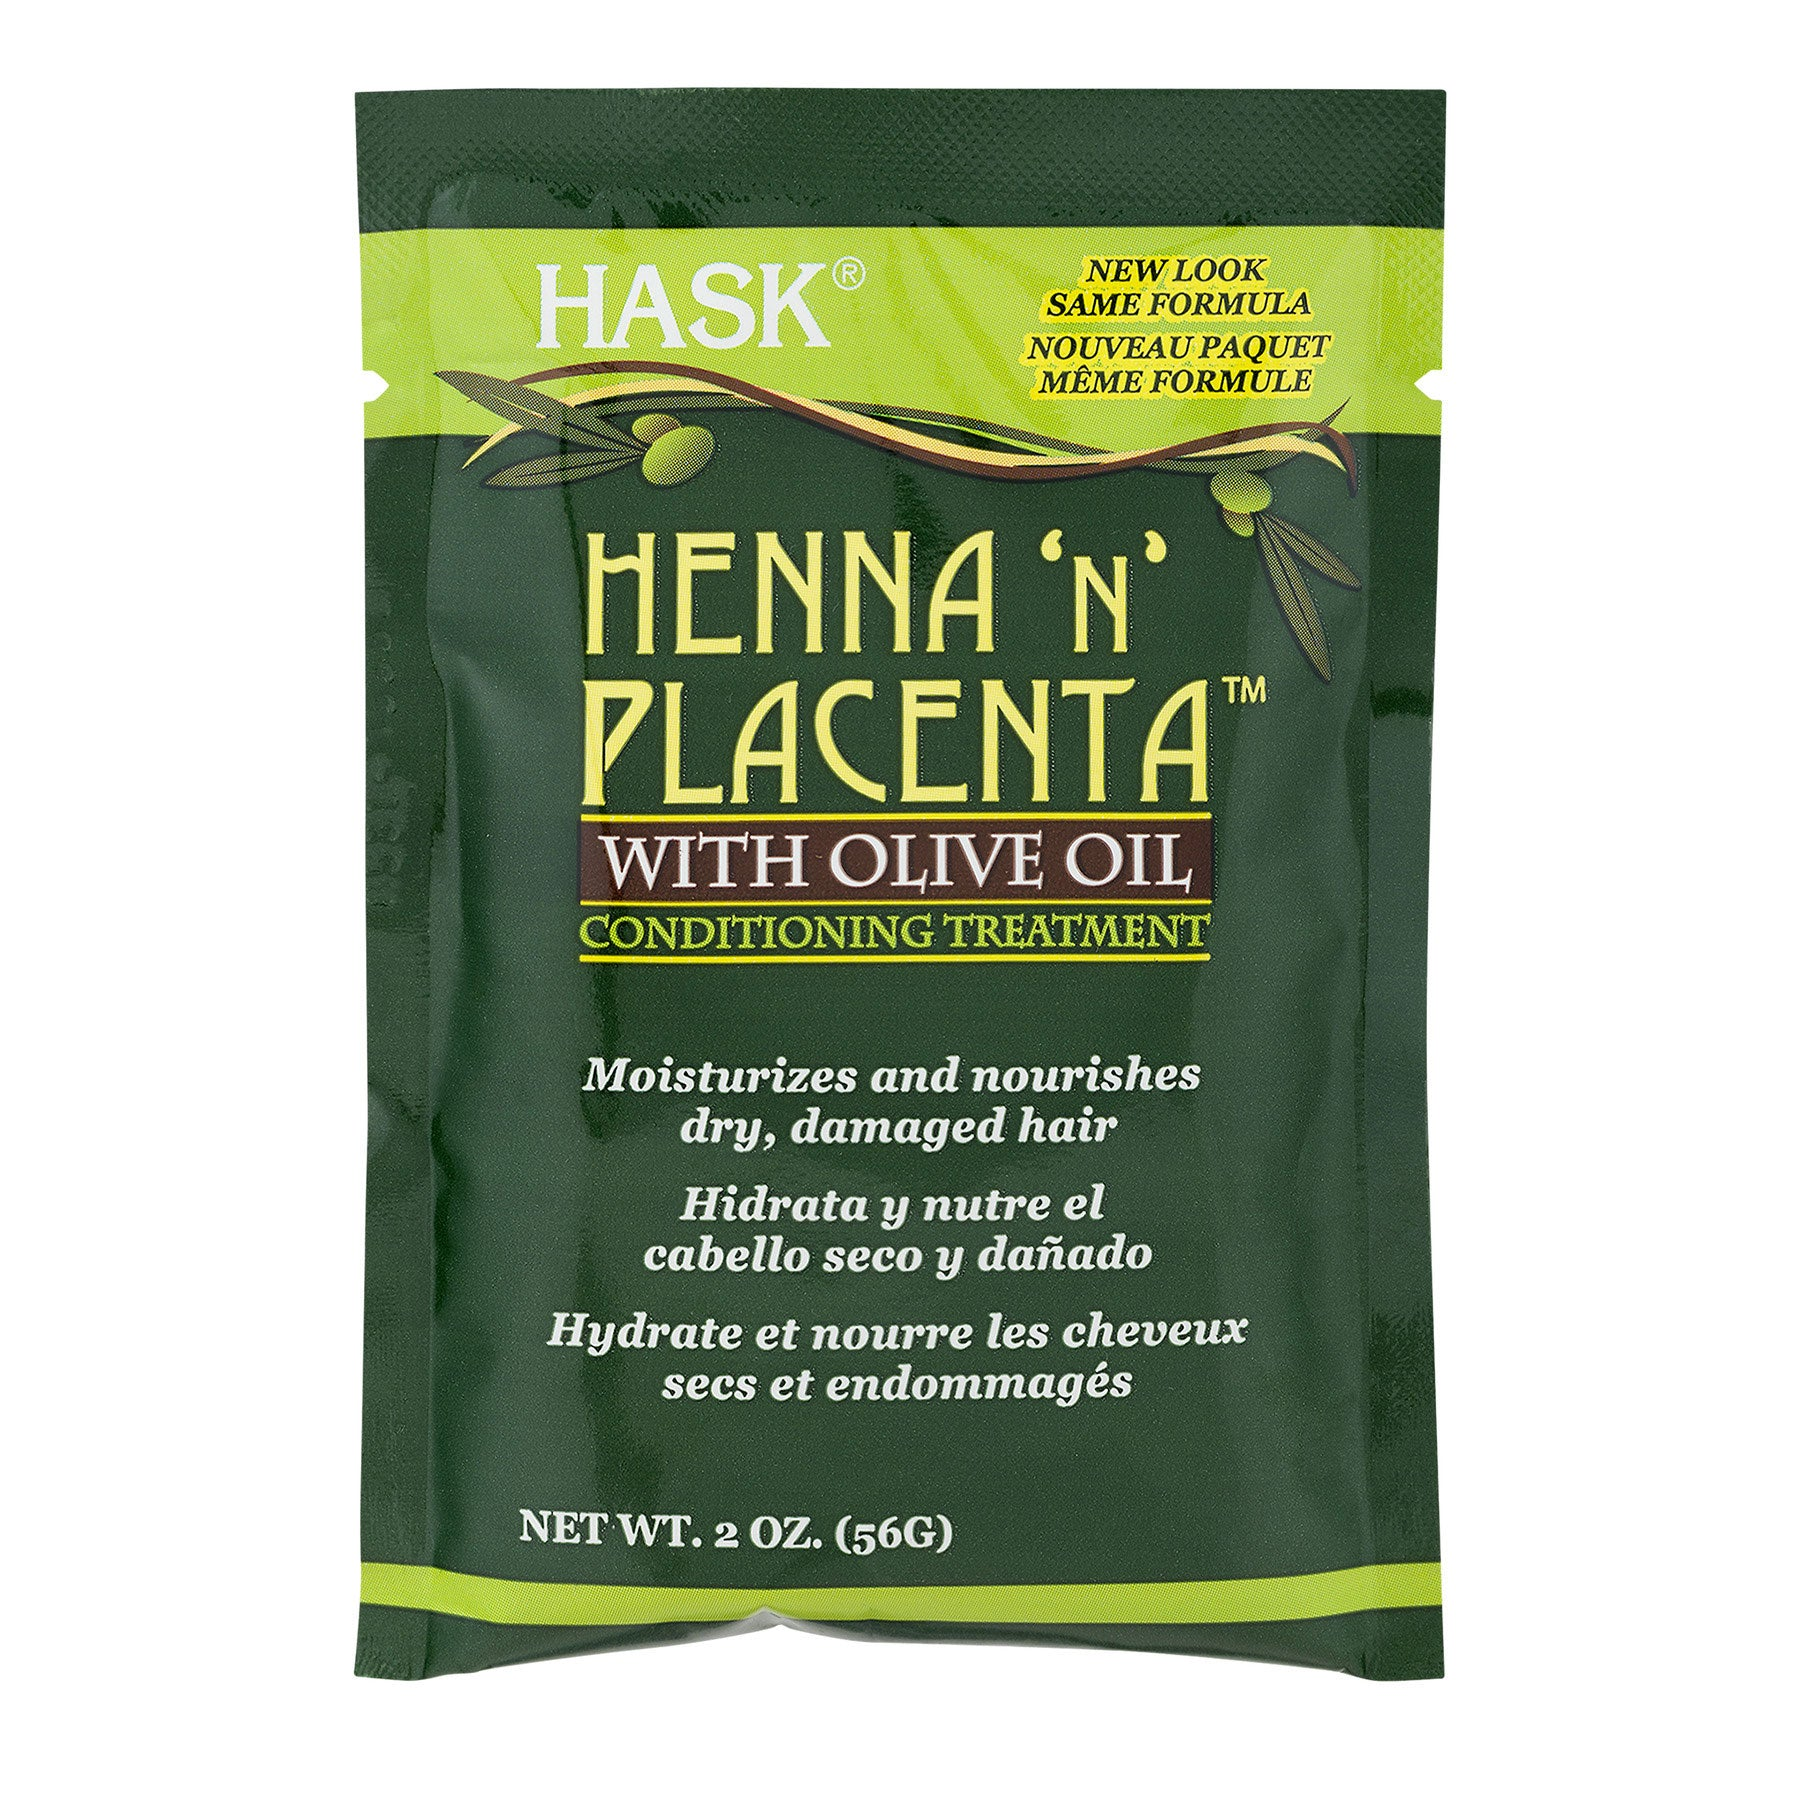 Hask Henna 'N' Placenta with Olive Oil Conditioning Treatment, 2 Ounce